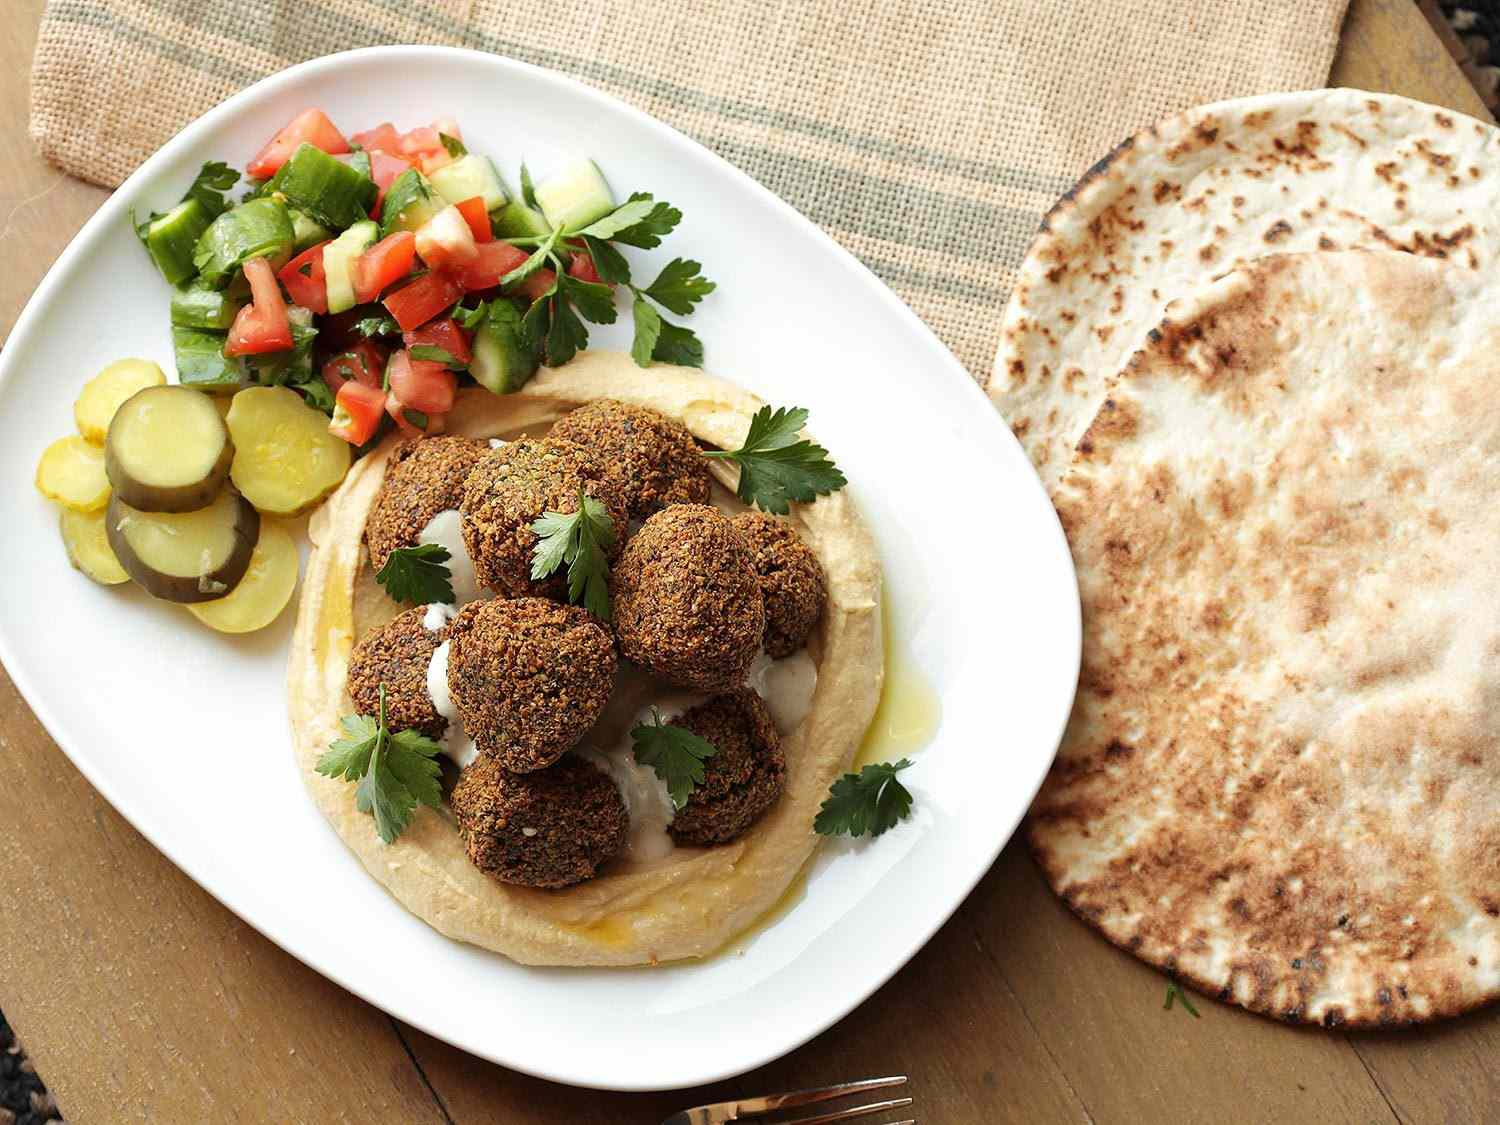 A plate of falafel and hummus with fresh herbs, pickles, and cucumber and tomato salad, next to pita bread